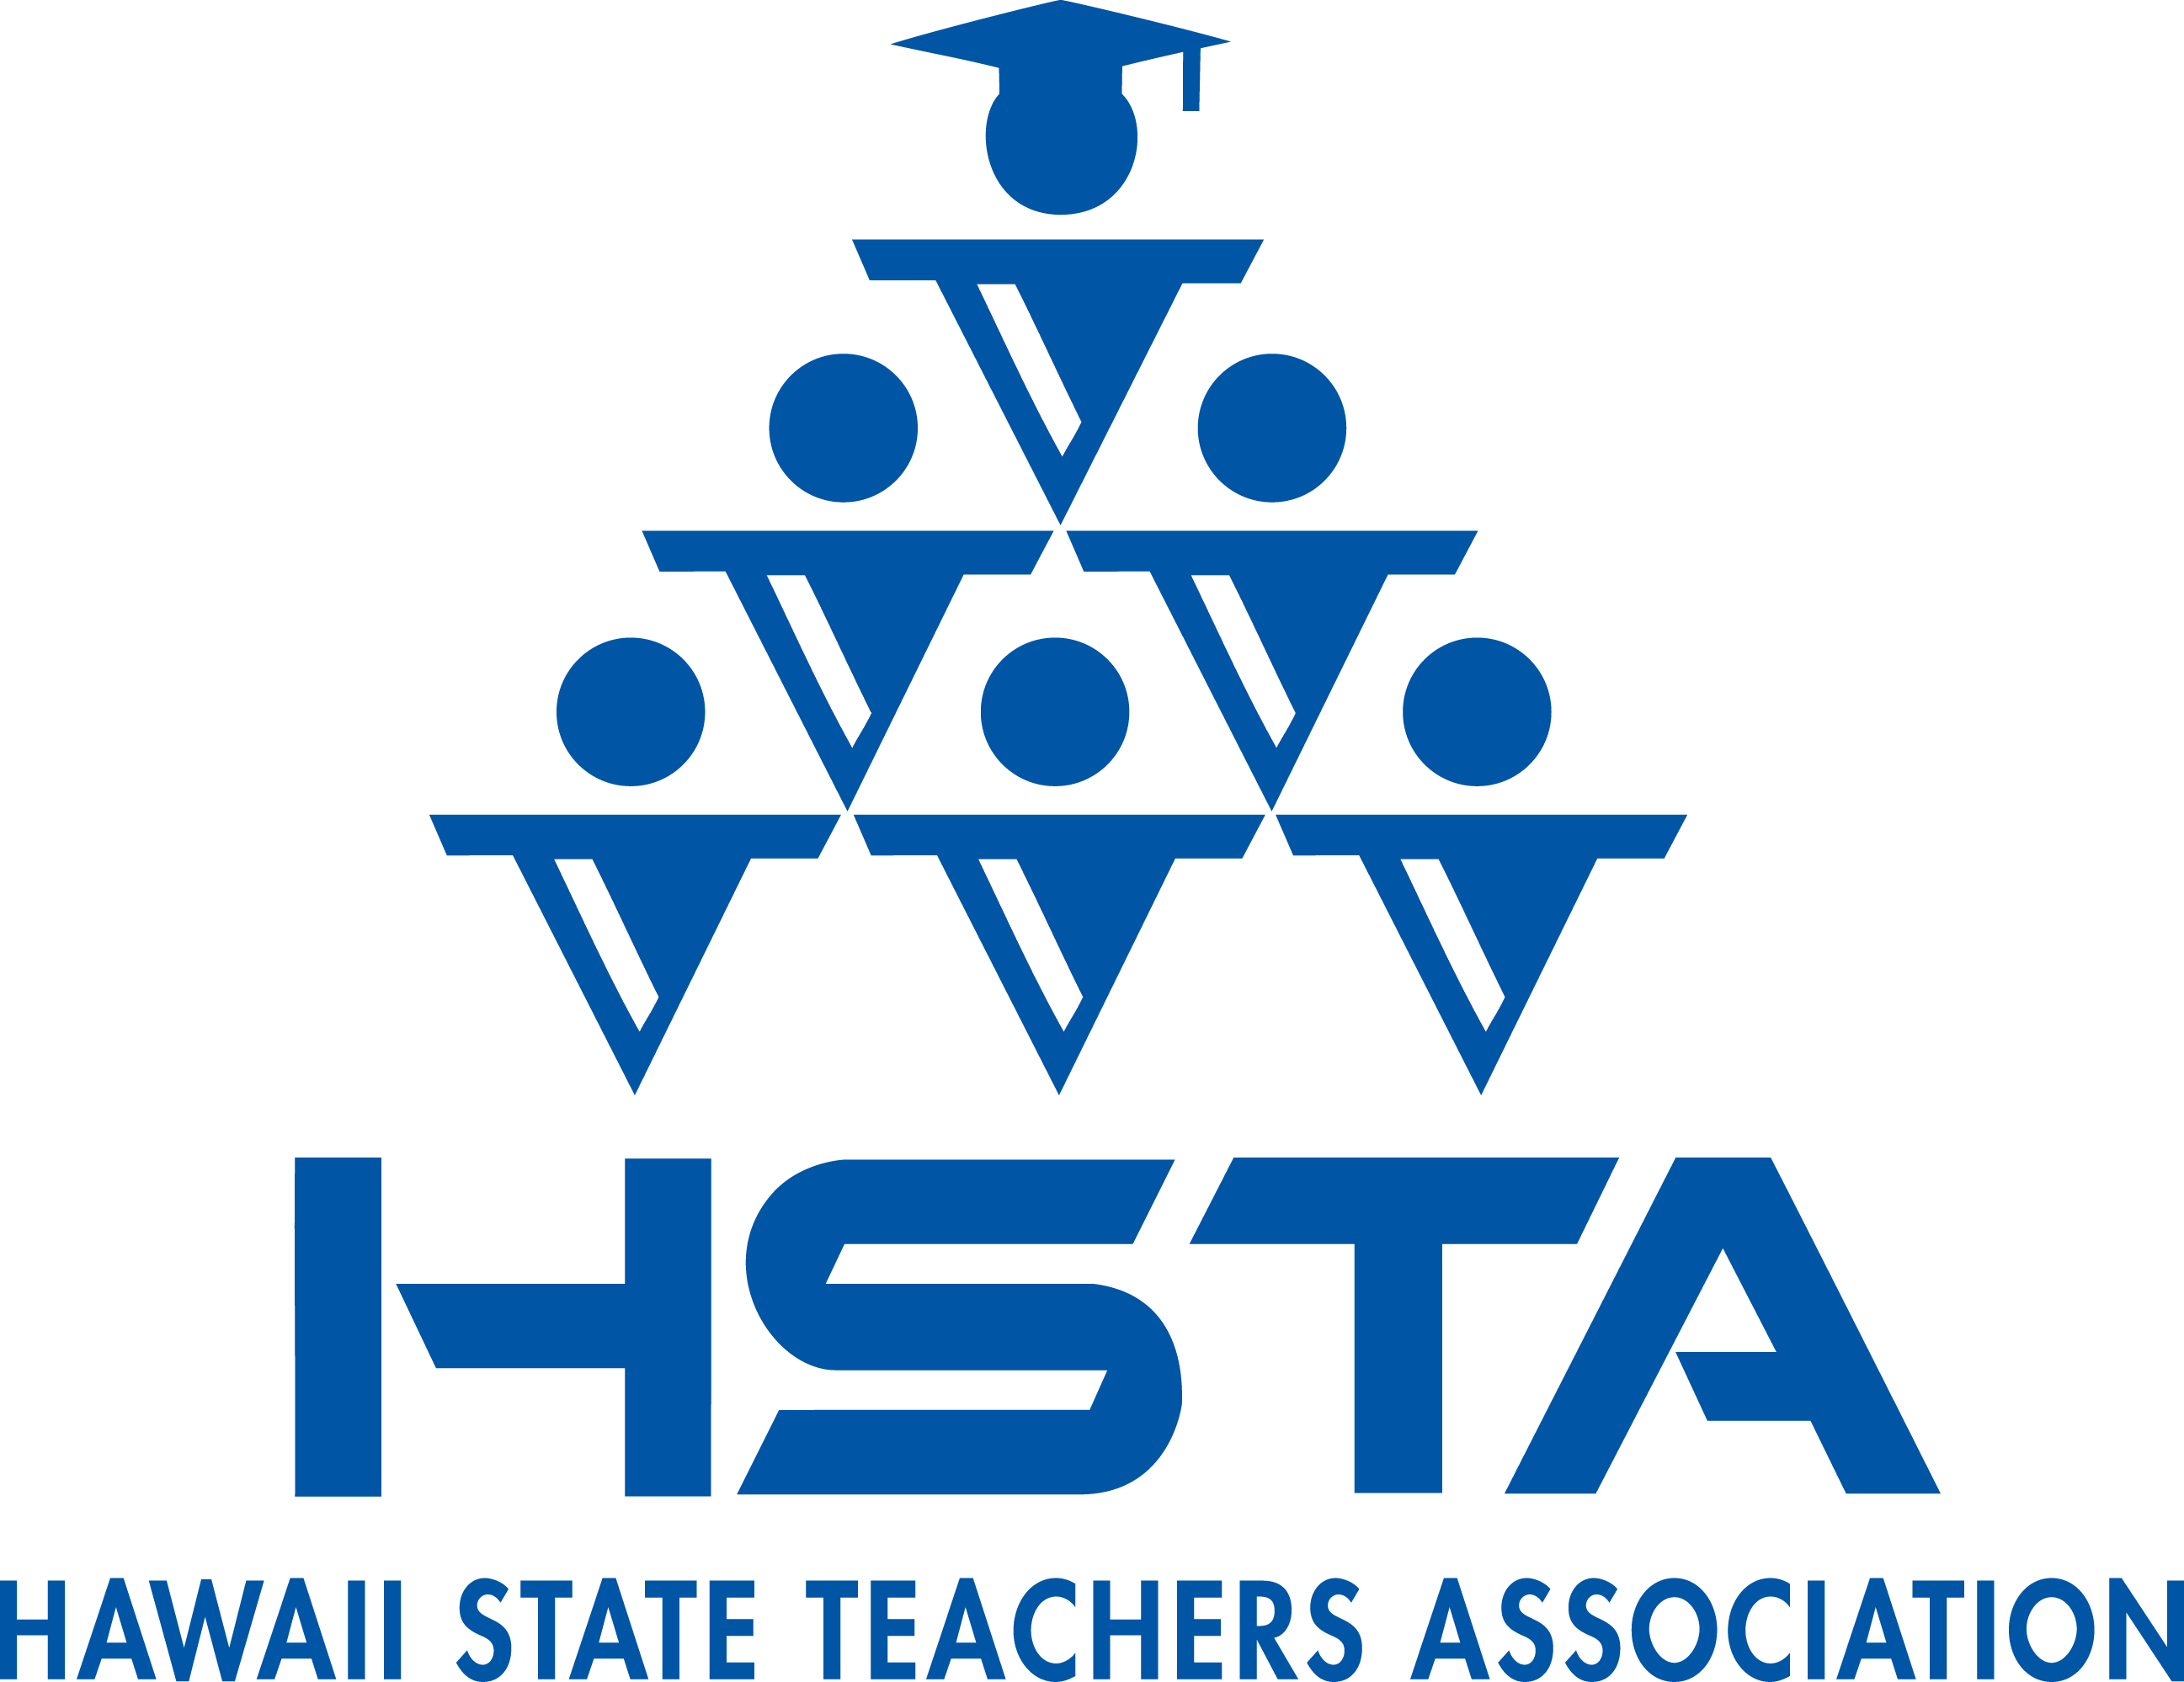 HSTA_logo_with_font-MASTER_LARGE.png